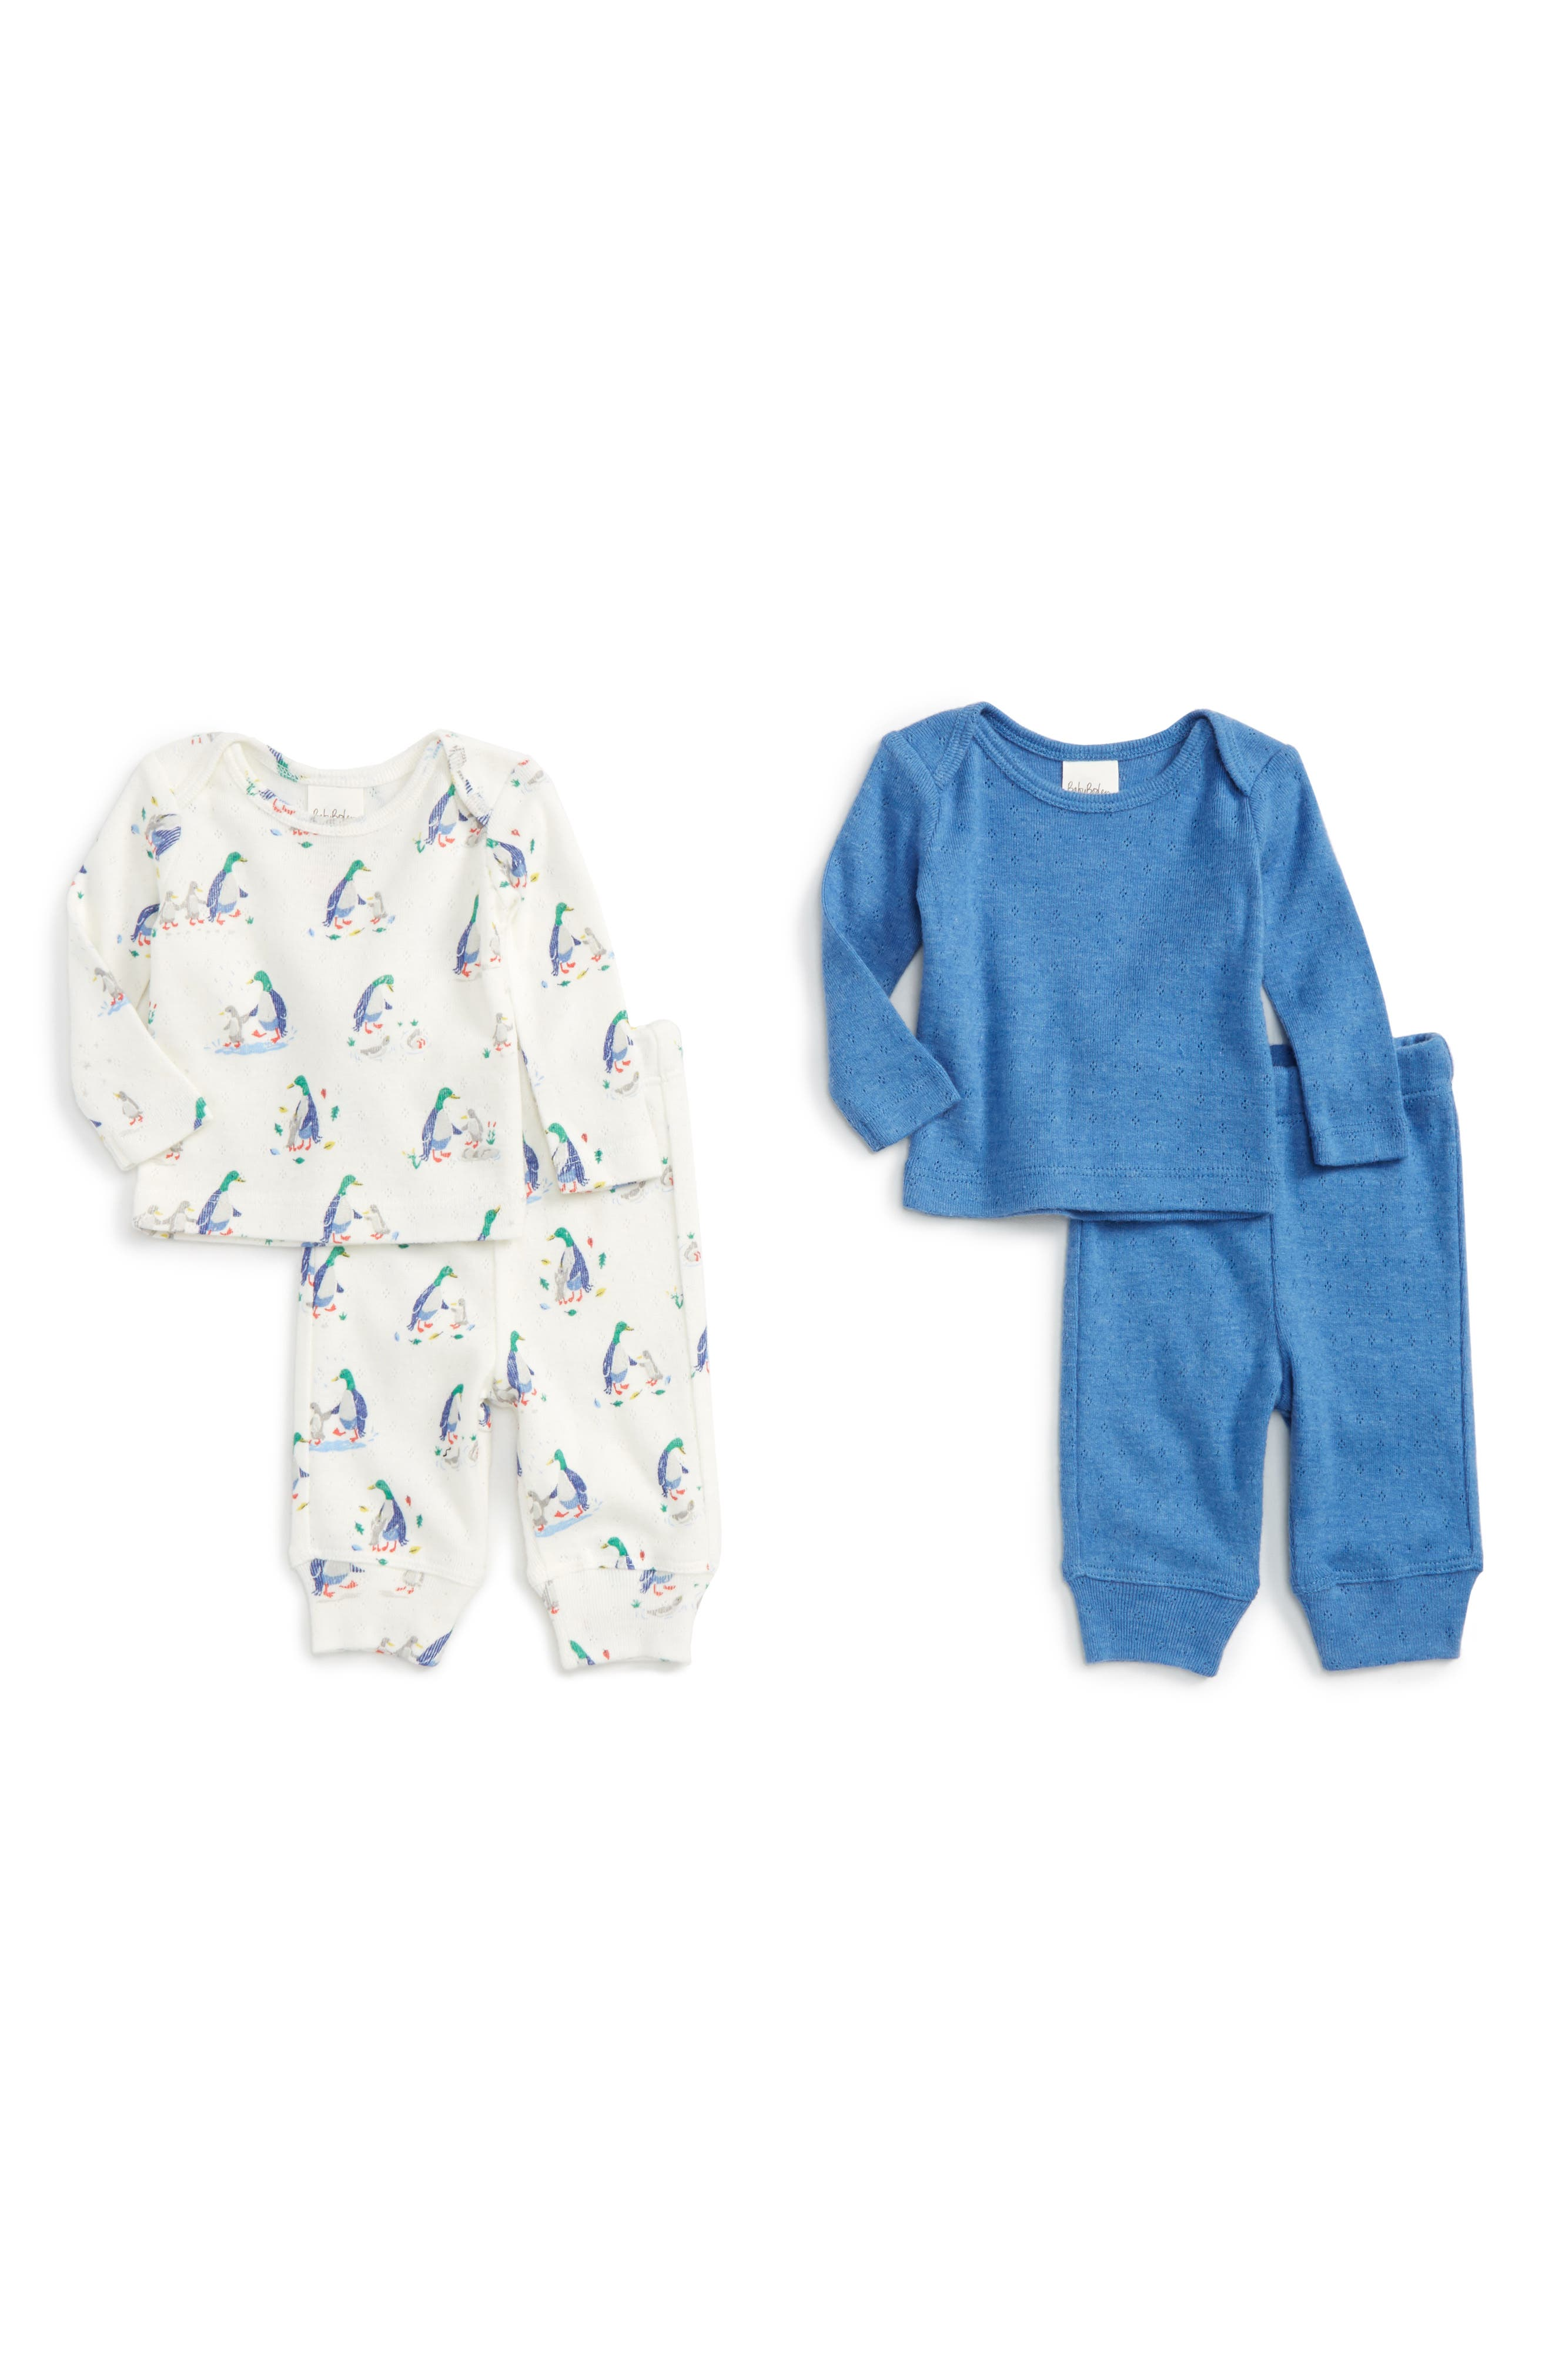 Main Image - Mini Boden Supersoft Pointelle 2-Pack T-Shirts & Pants (Baby)